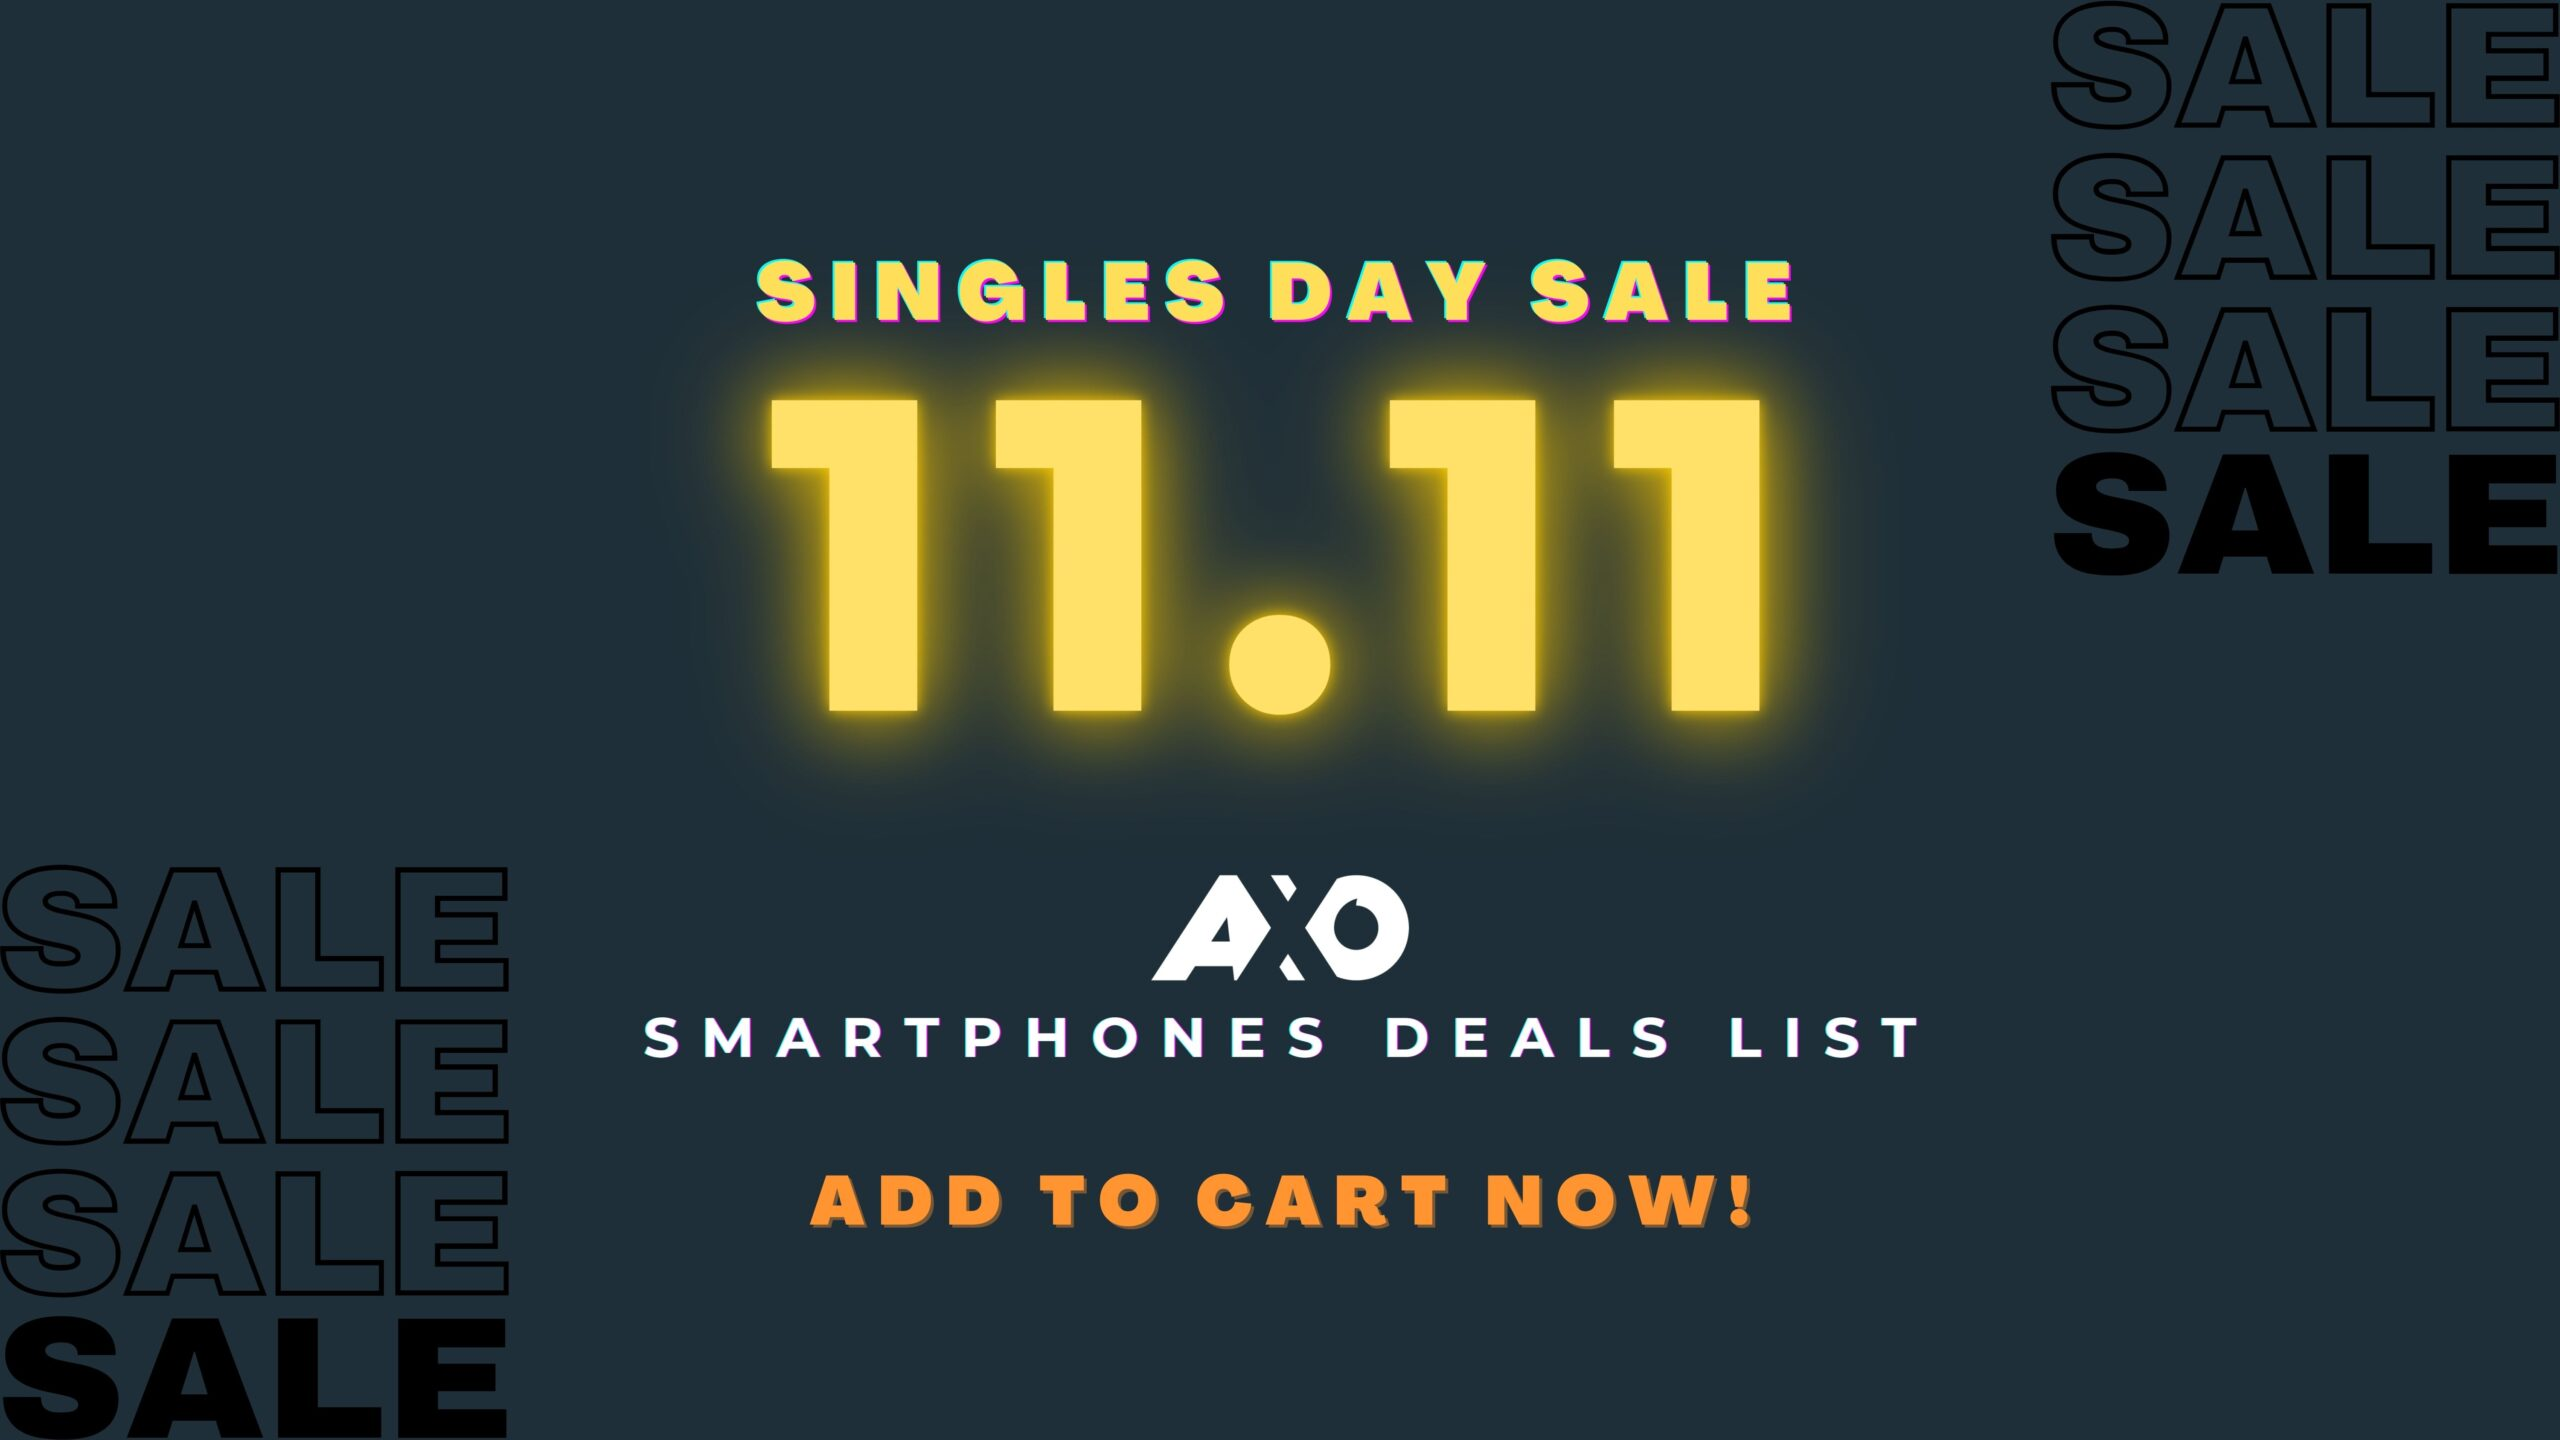 [2020] Singles Day Smartphone Deals this 11.11 Sale! Add To Cart Now! 1